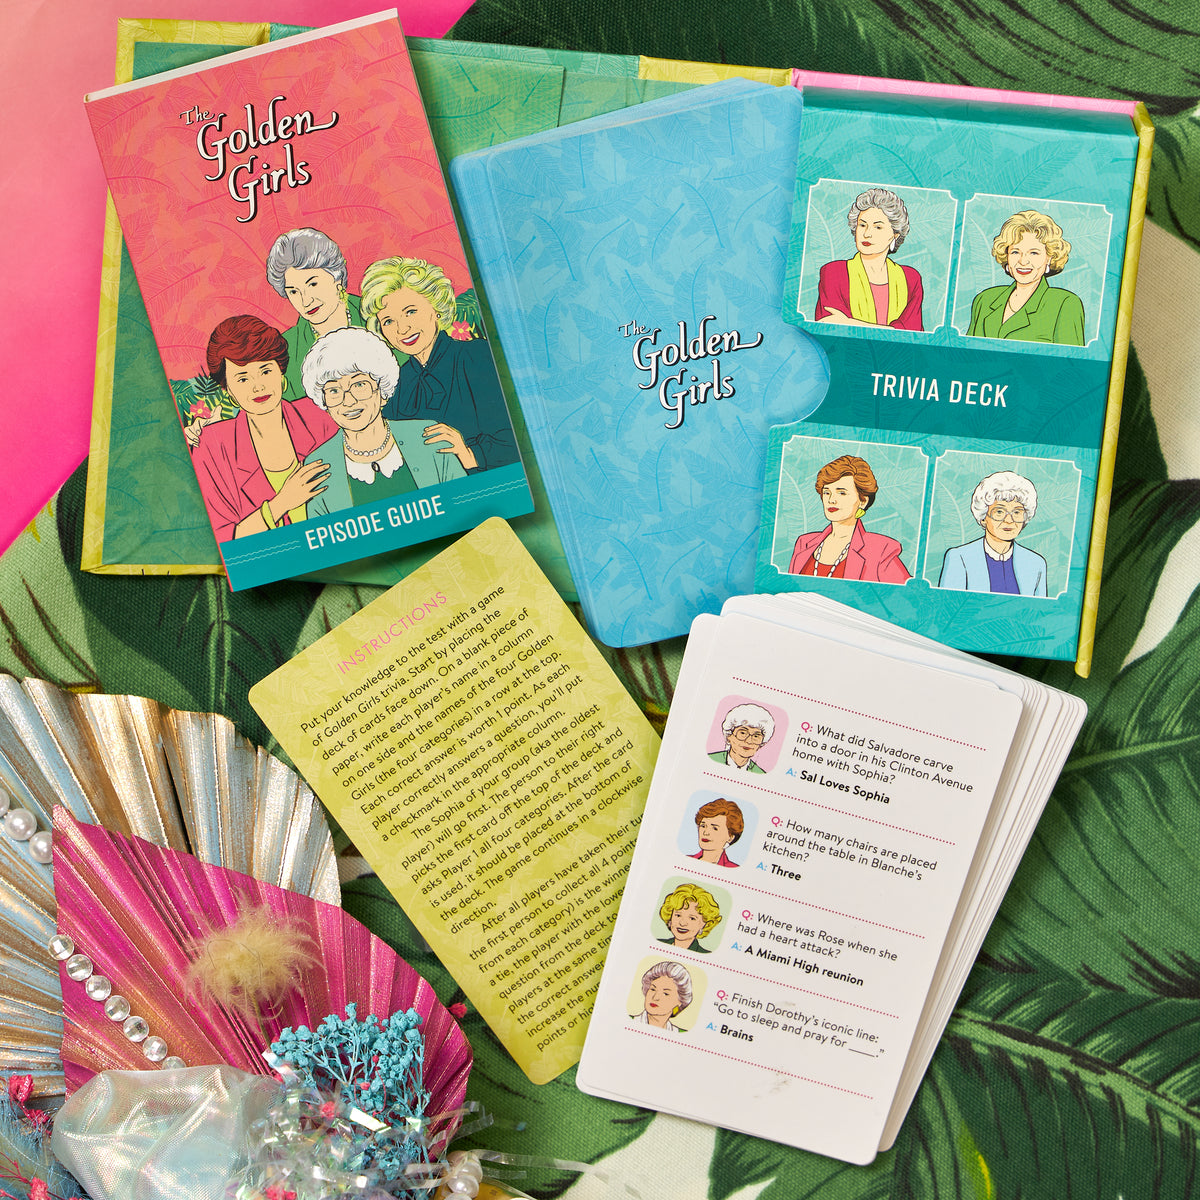 The Golden Girls Trivia Deck and Episode Guide